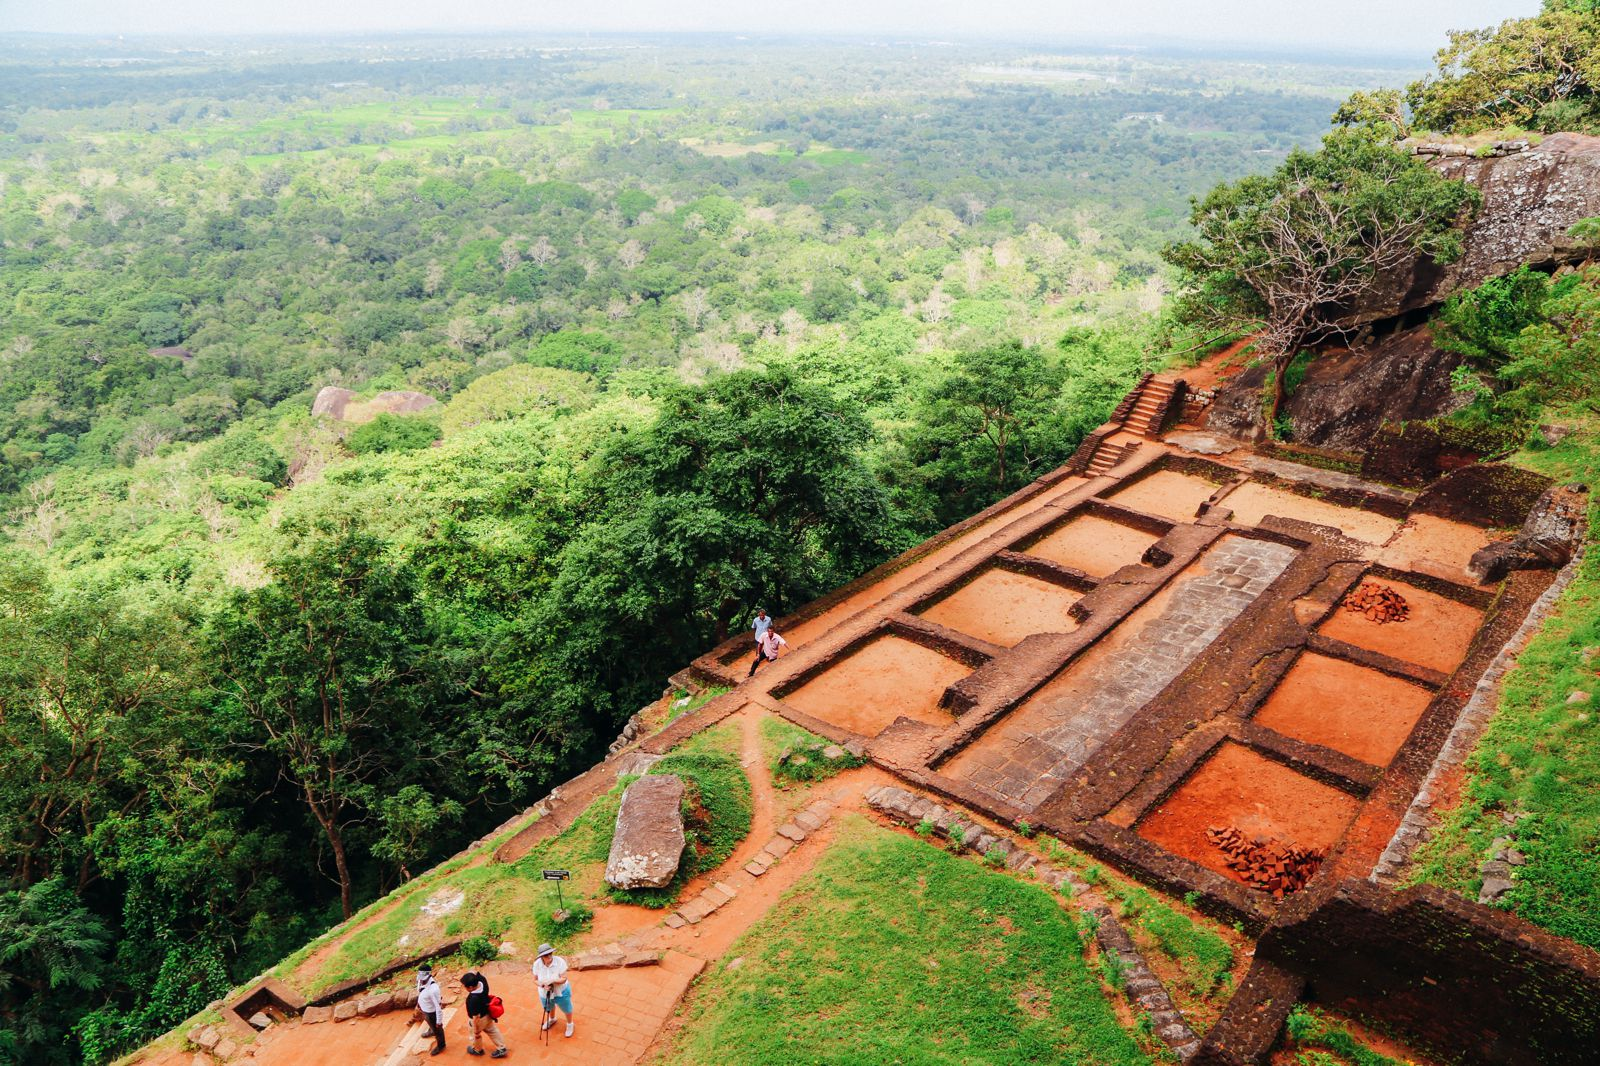 The Complete Guide To Climbing Sri Lanka's UNESCO World Heritage Site Of Sigiriya - Lion Rock (22)